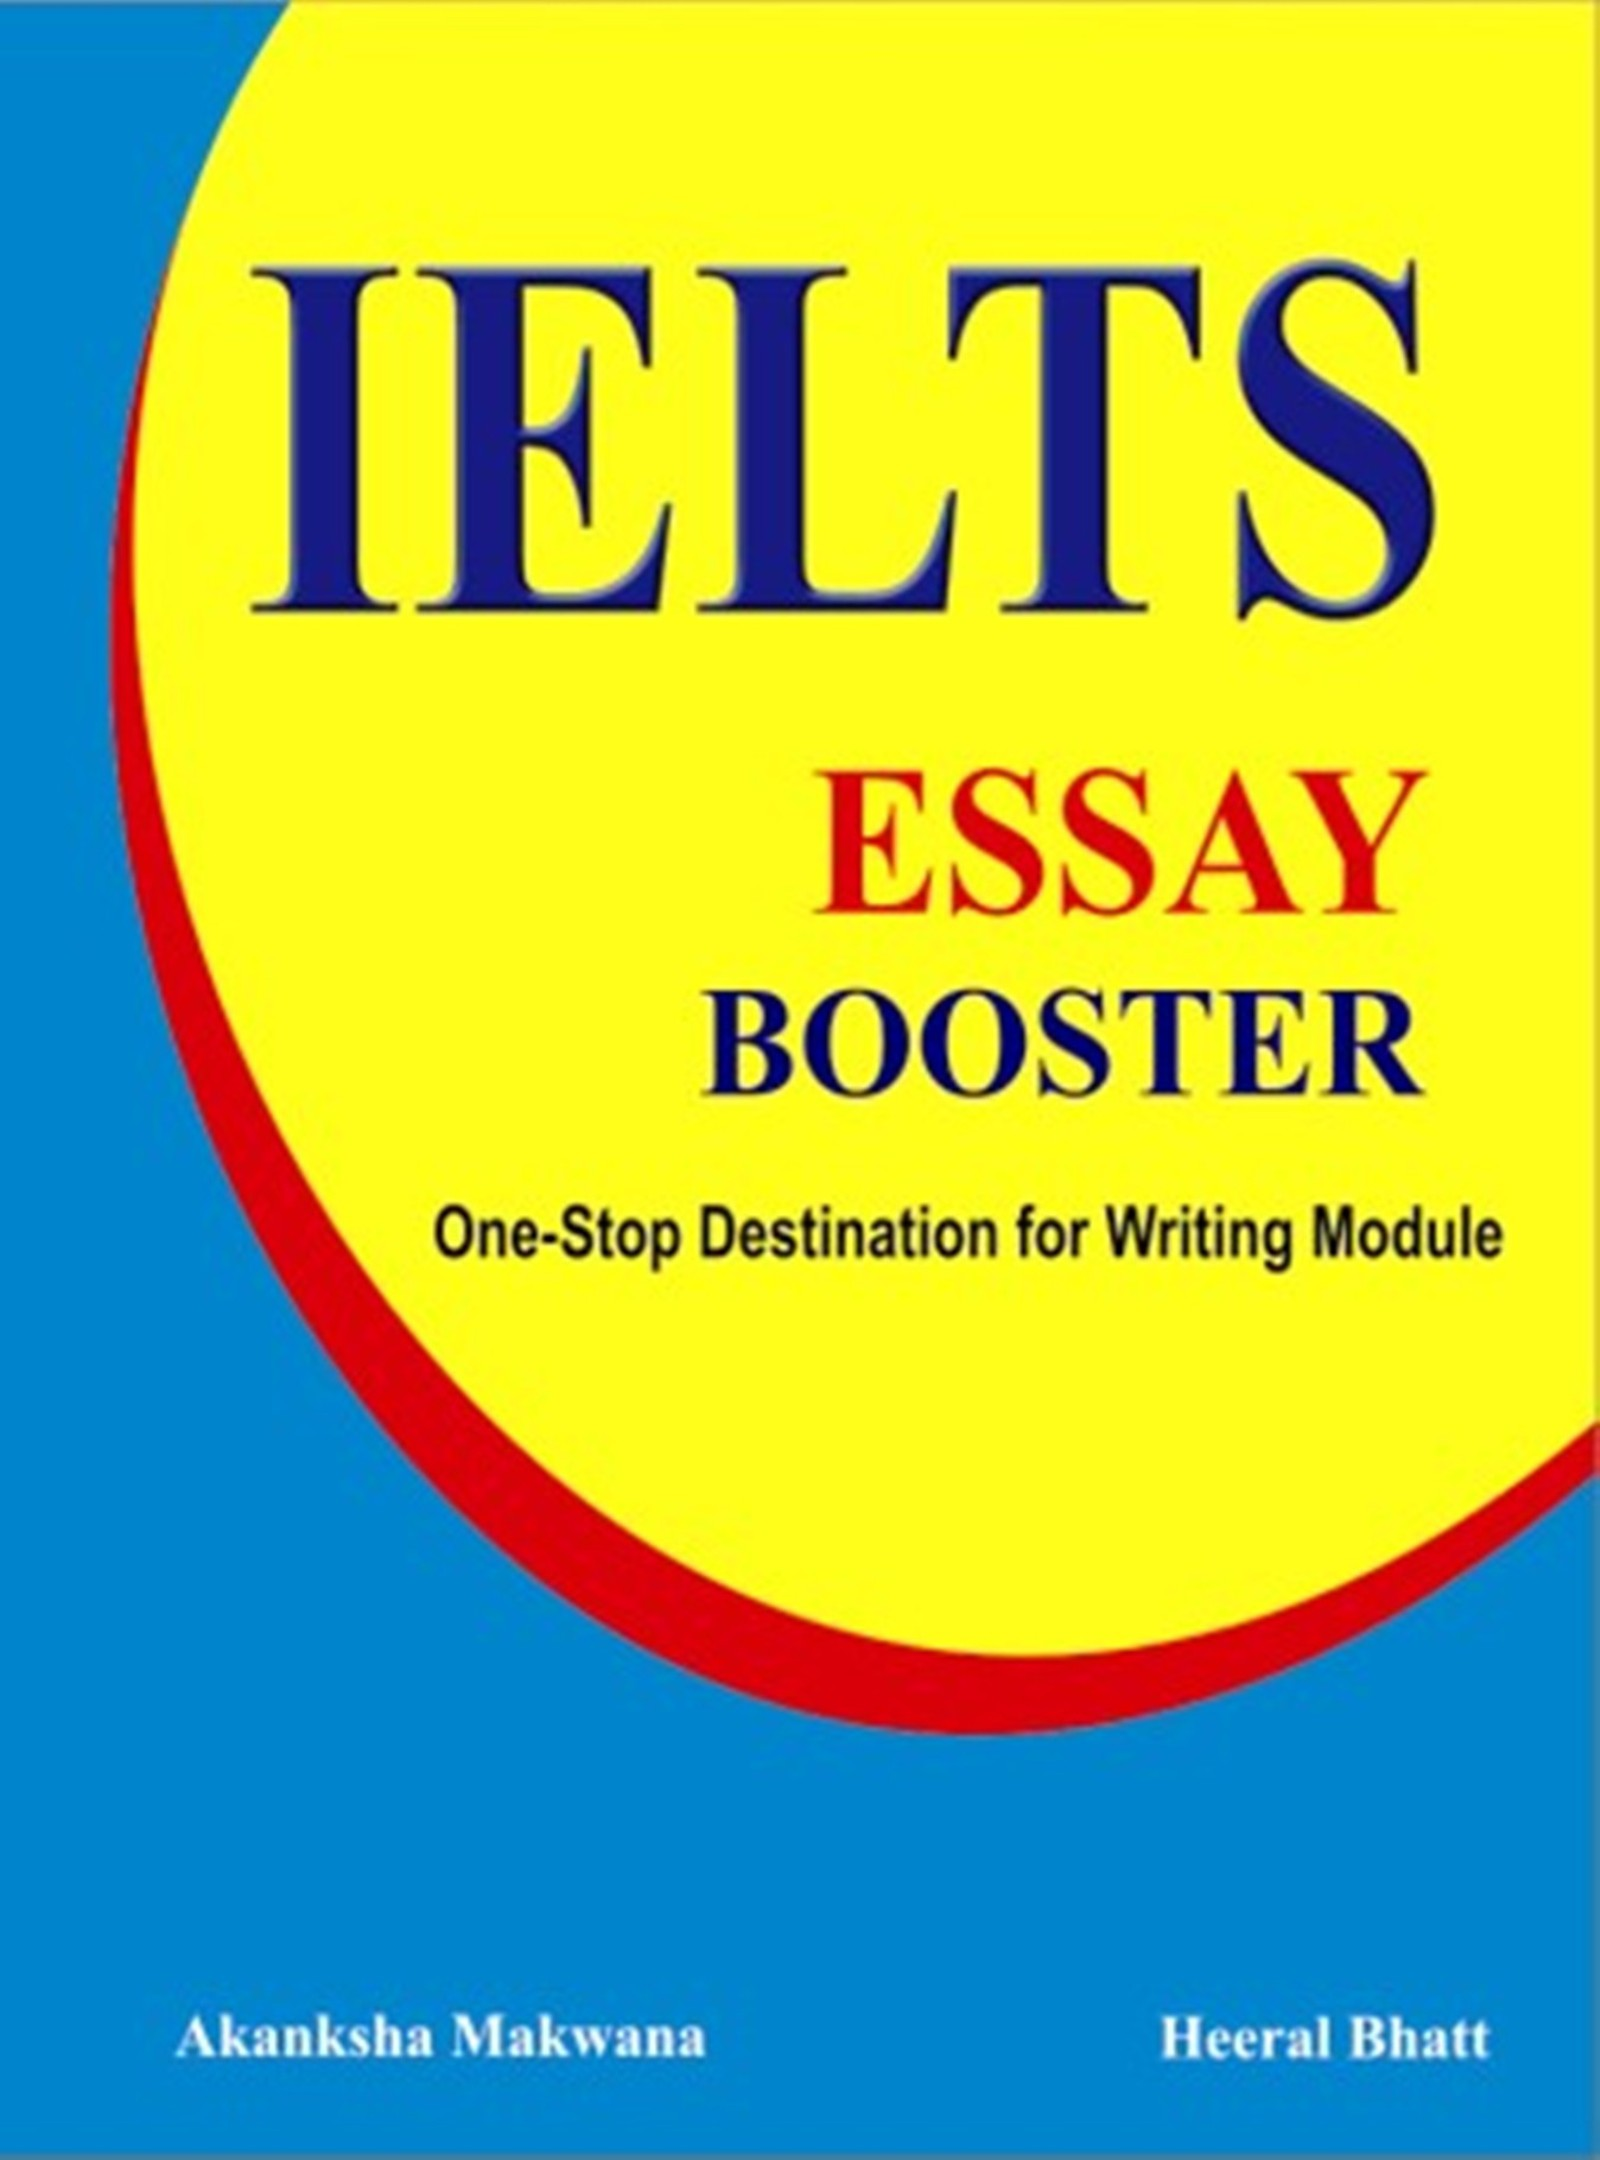 Autobiographical Narrative Essay Ielts Essay Booster One Stop Destination For The Readers Nyu Application Essay Prompt also Literary Comparison Essay Ielts Academic Essays Ielts Essay Booster One Stop Destination For  Mla Citation For An Essay